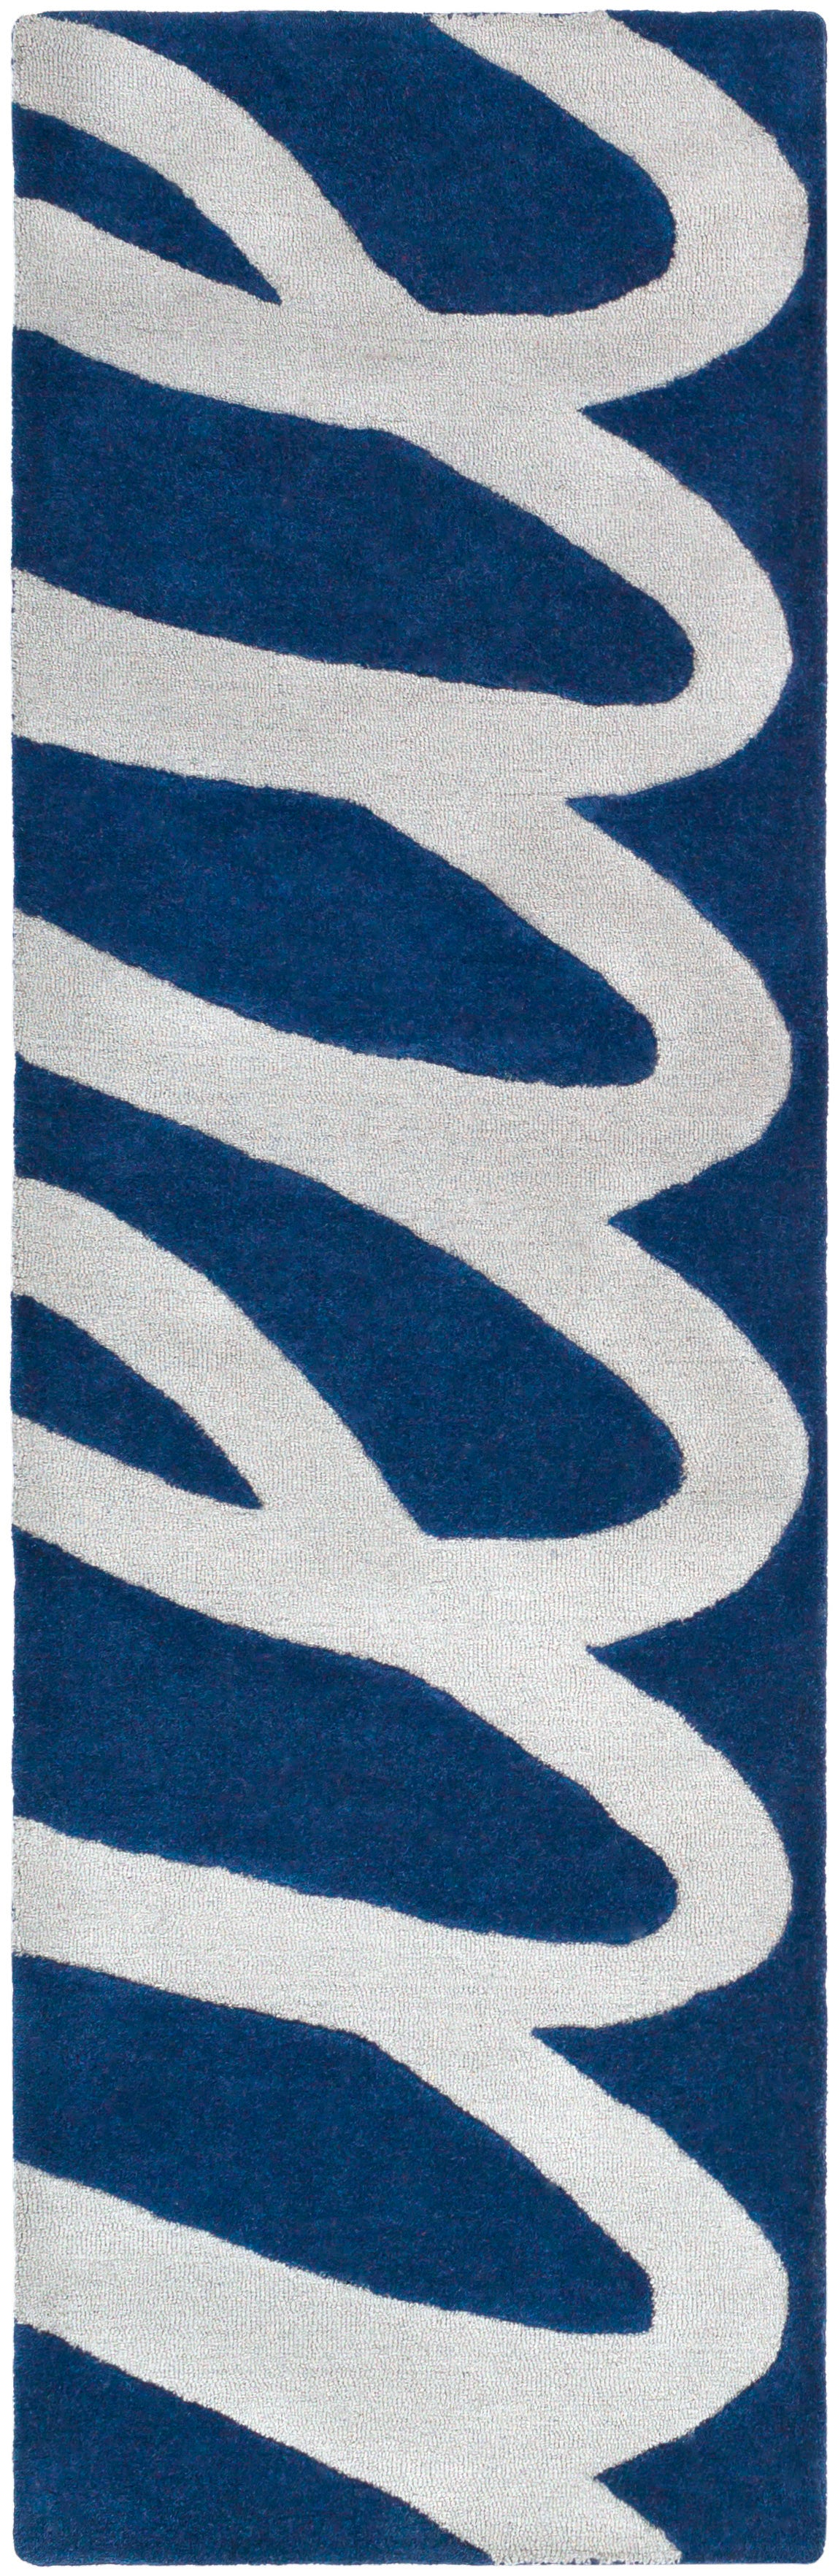 Surya Kennedy KDY3023 Grey/Blue Modern Area Rug